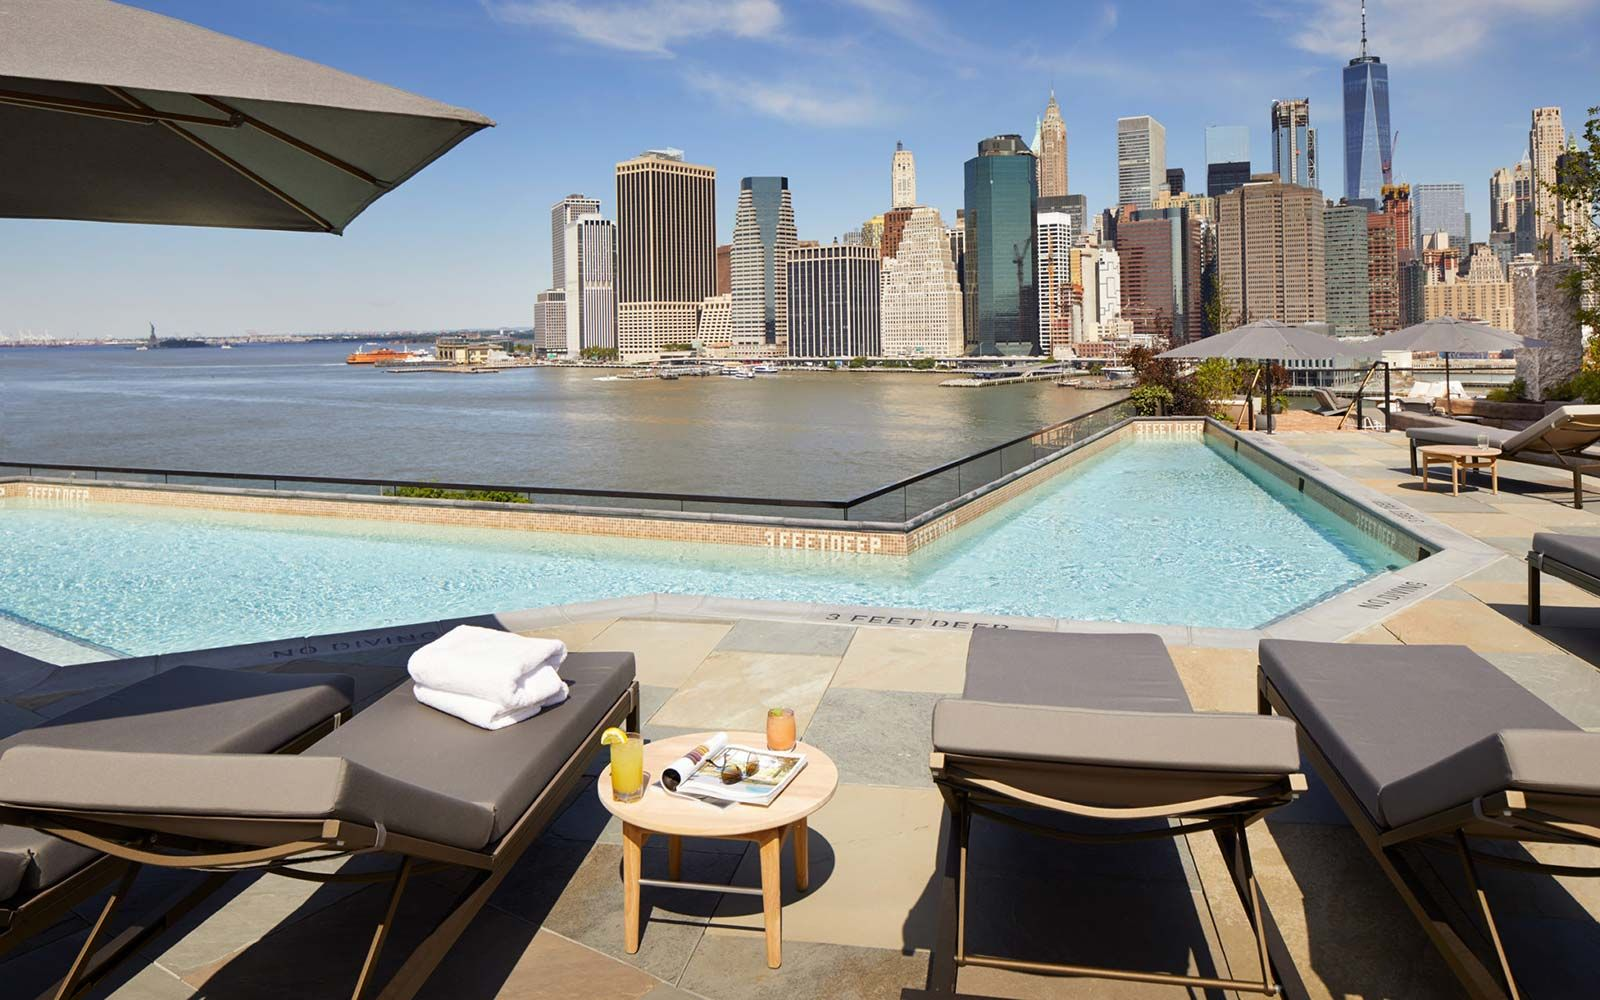 The Best Rooftop Bars In Nyc In 2020 Rooftop Bars Nyc Best Rooftop Bars Nyc Hotels